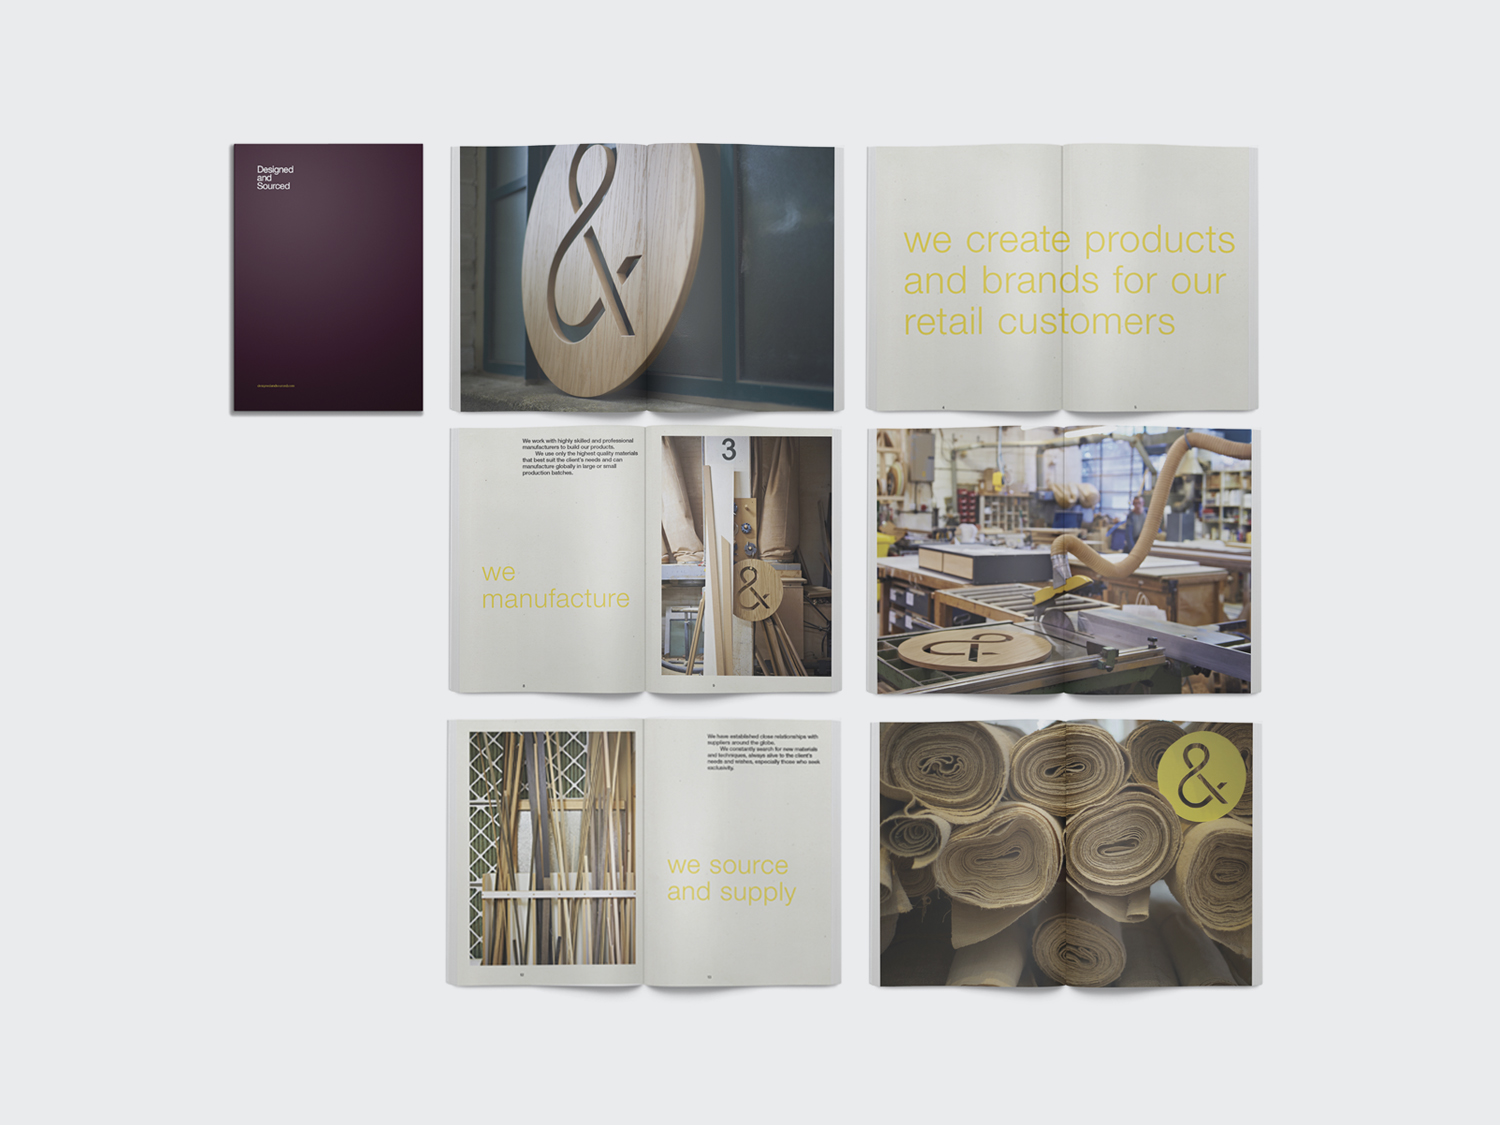 Designed & Sourced Creative Direction. Catalogue and Brand Building for Designed & Sourced